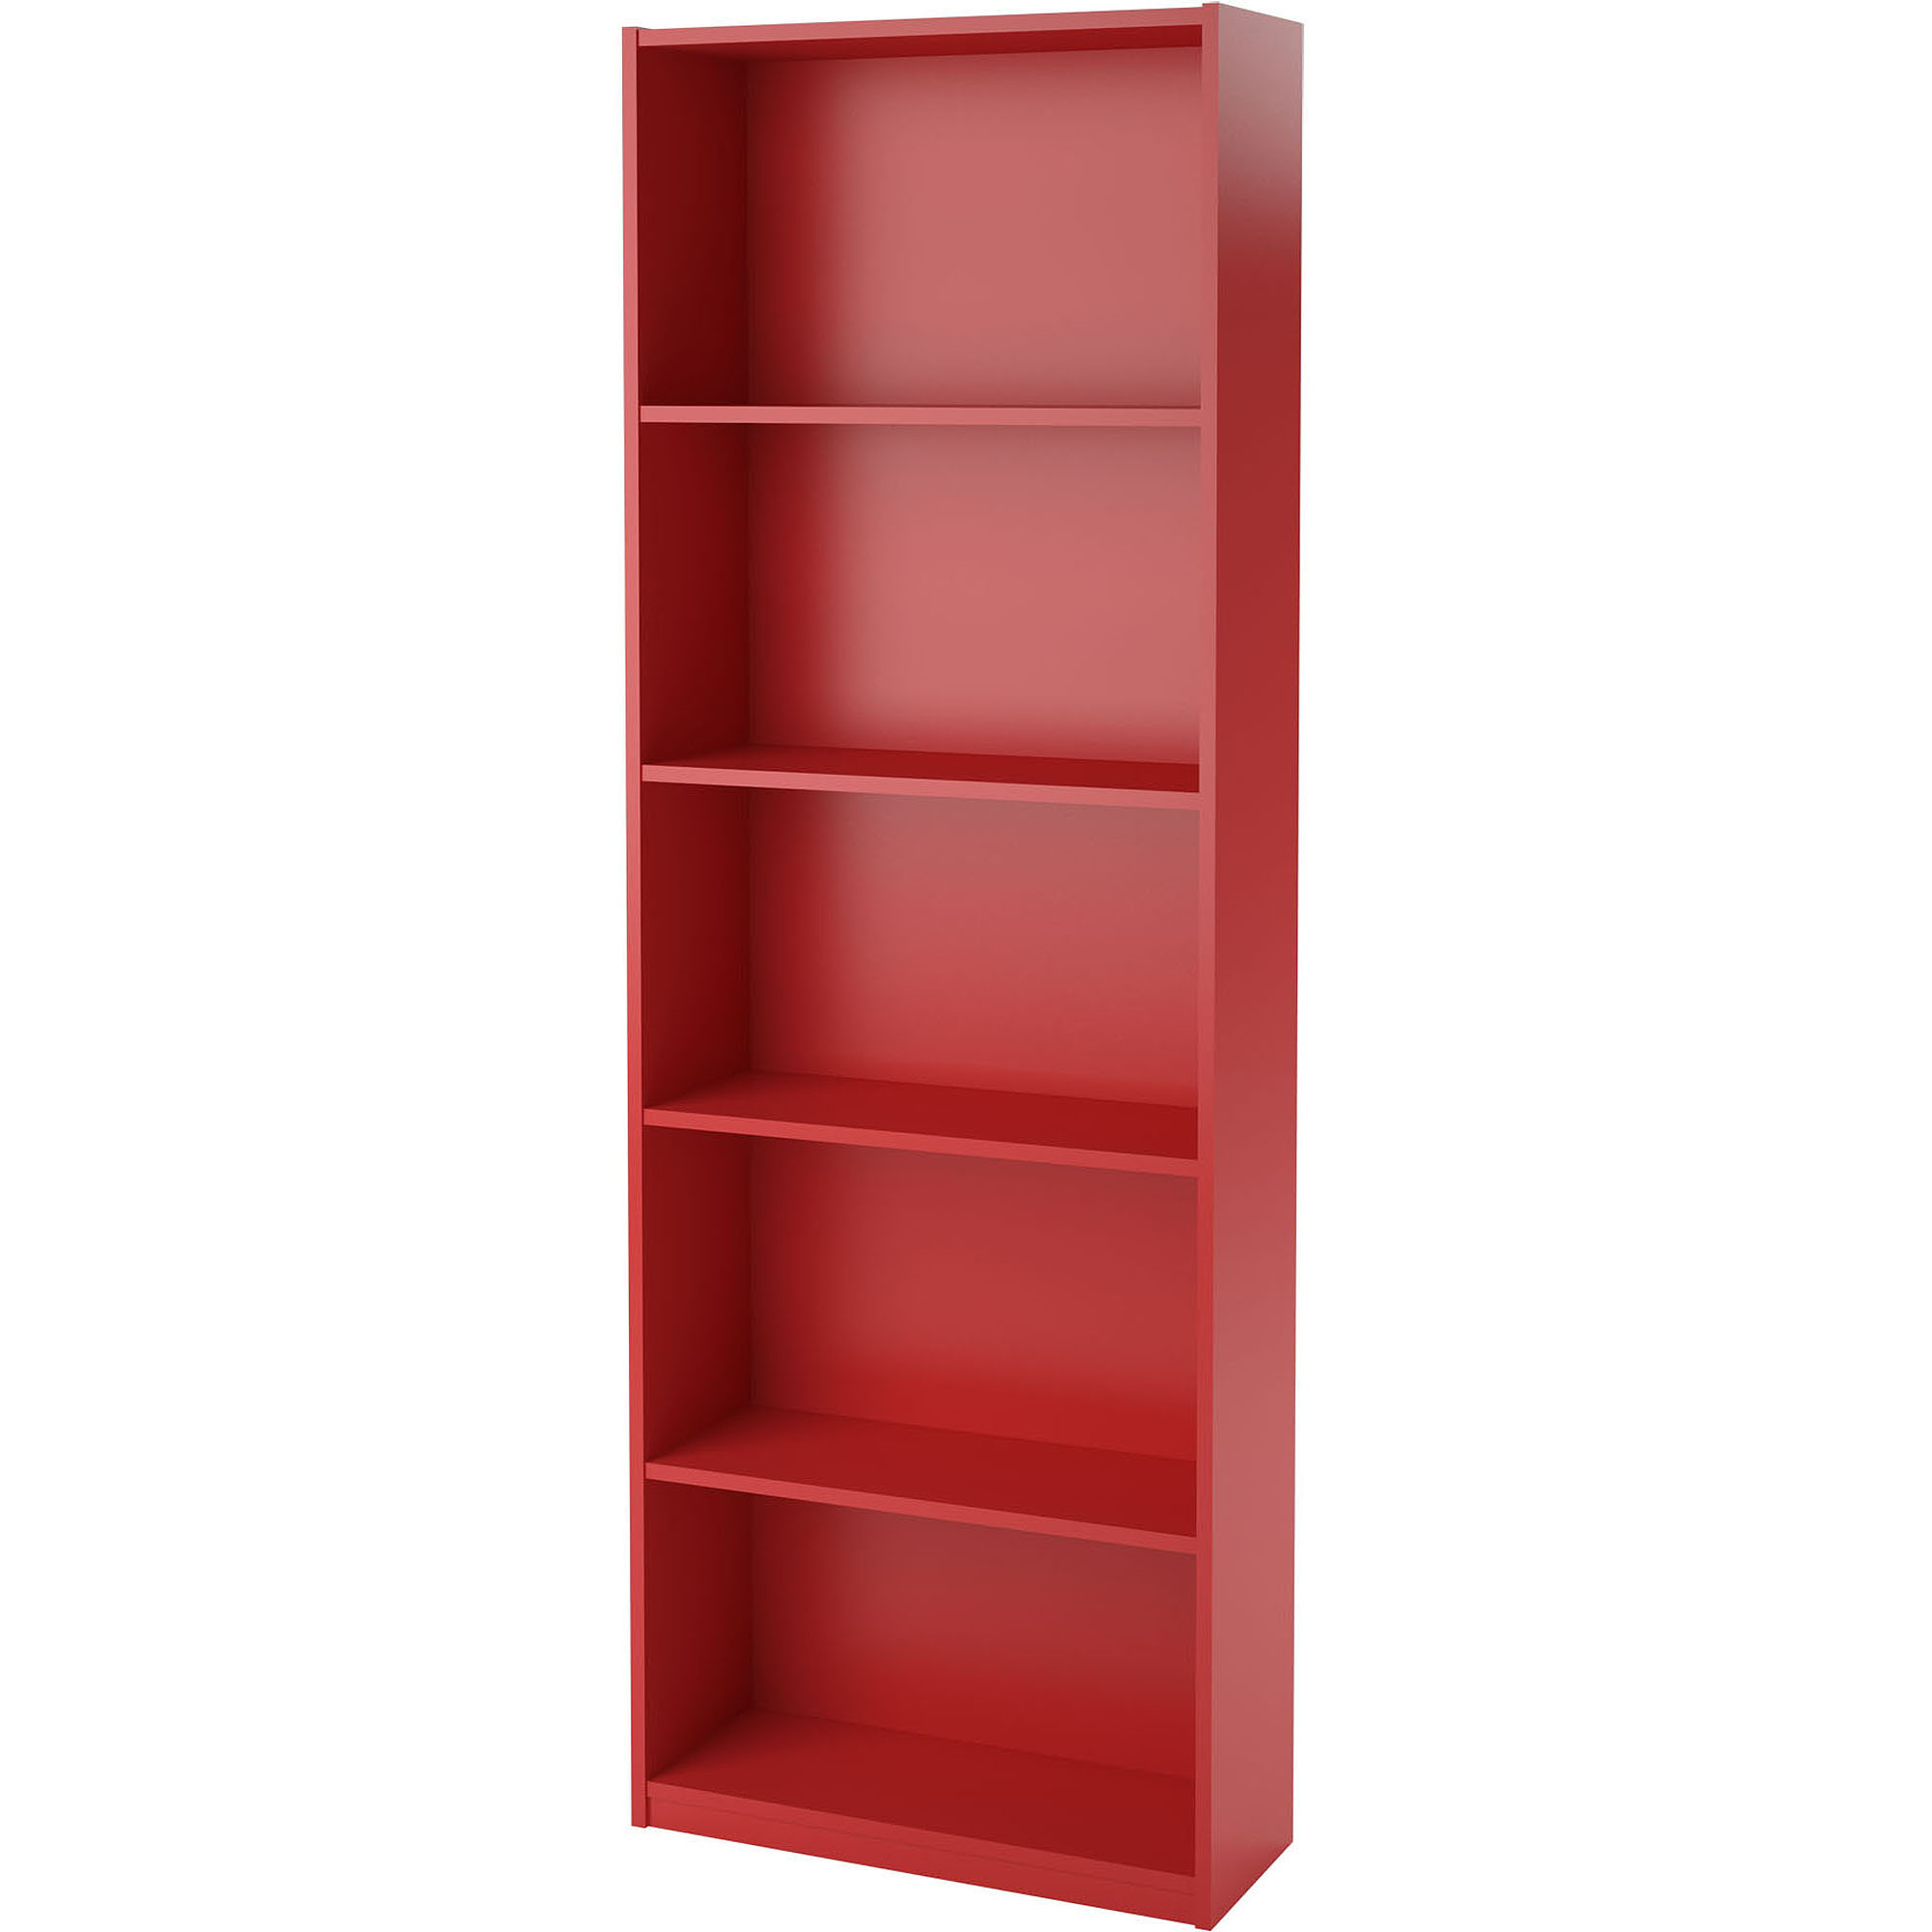 metal together size also with online legs store cube sale for bookshelf ikea of shelves garden container full plus